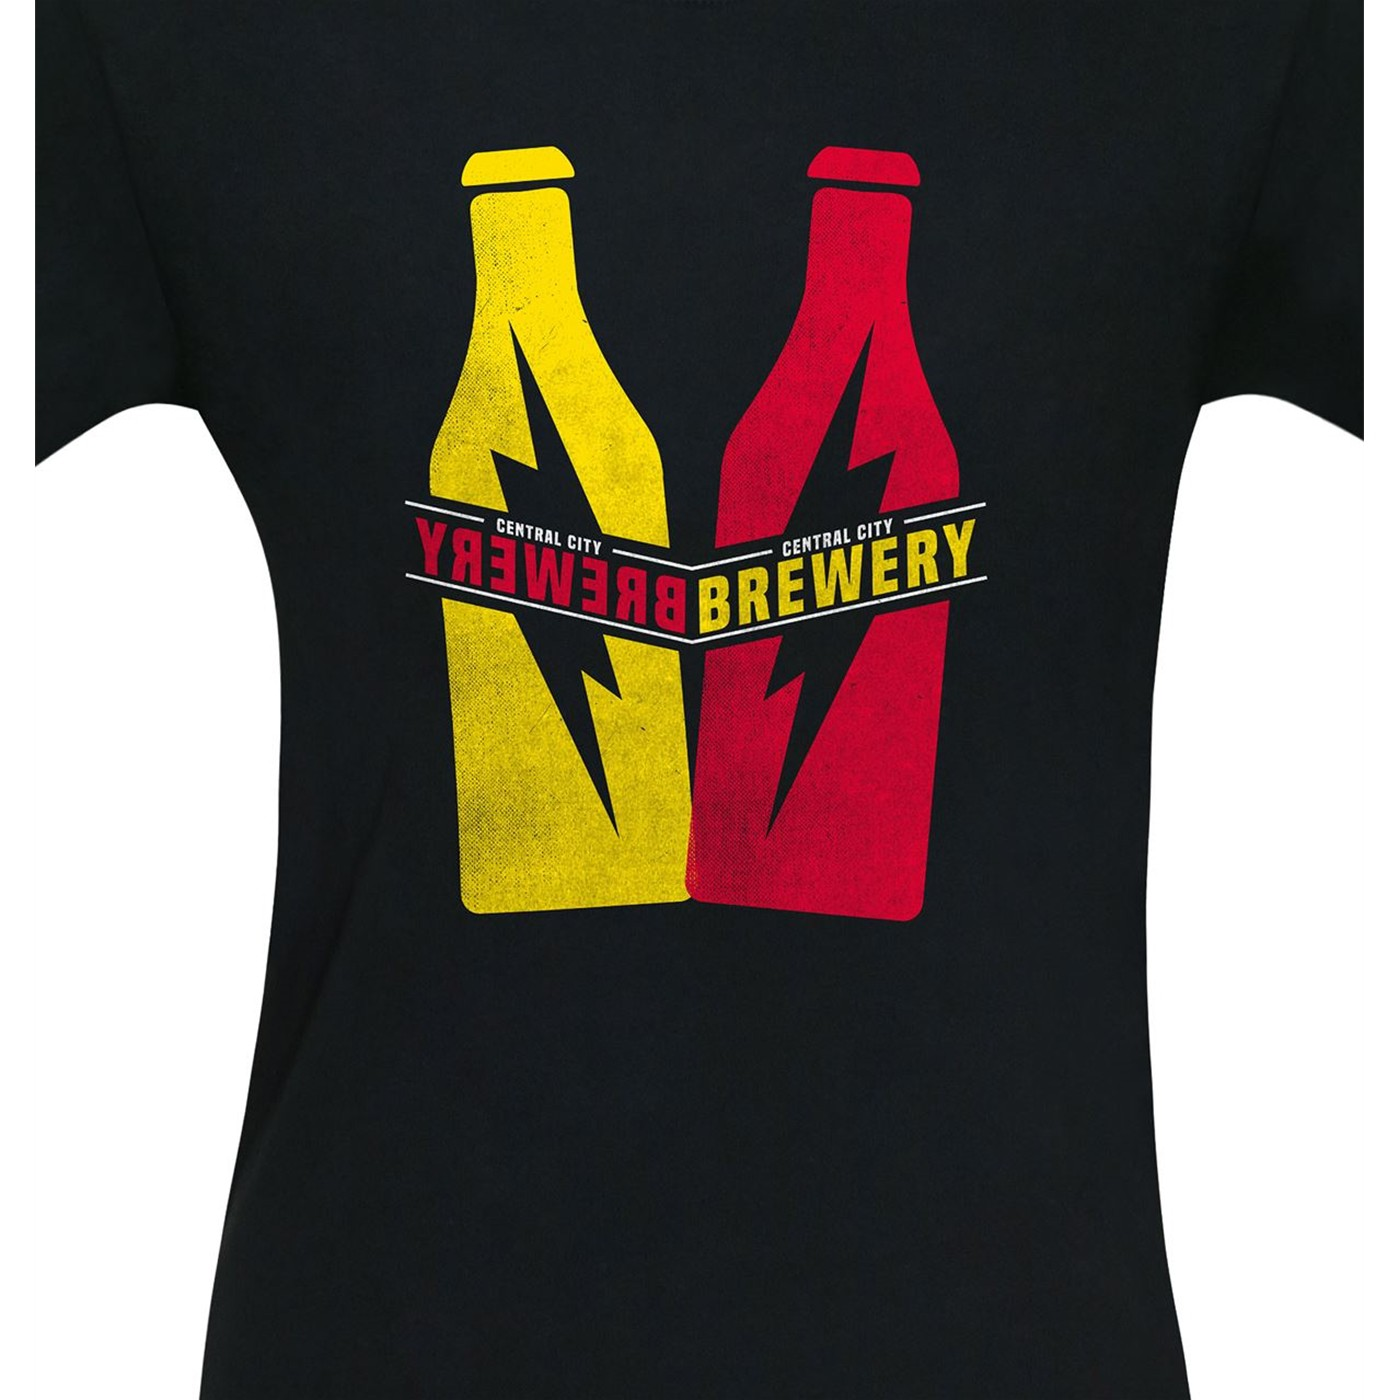 Central City Brewery Men's T-Shirt